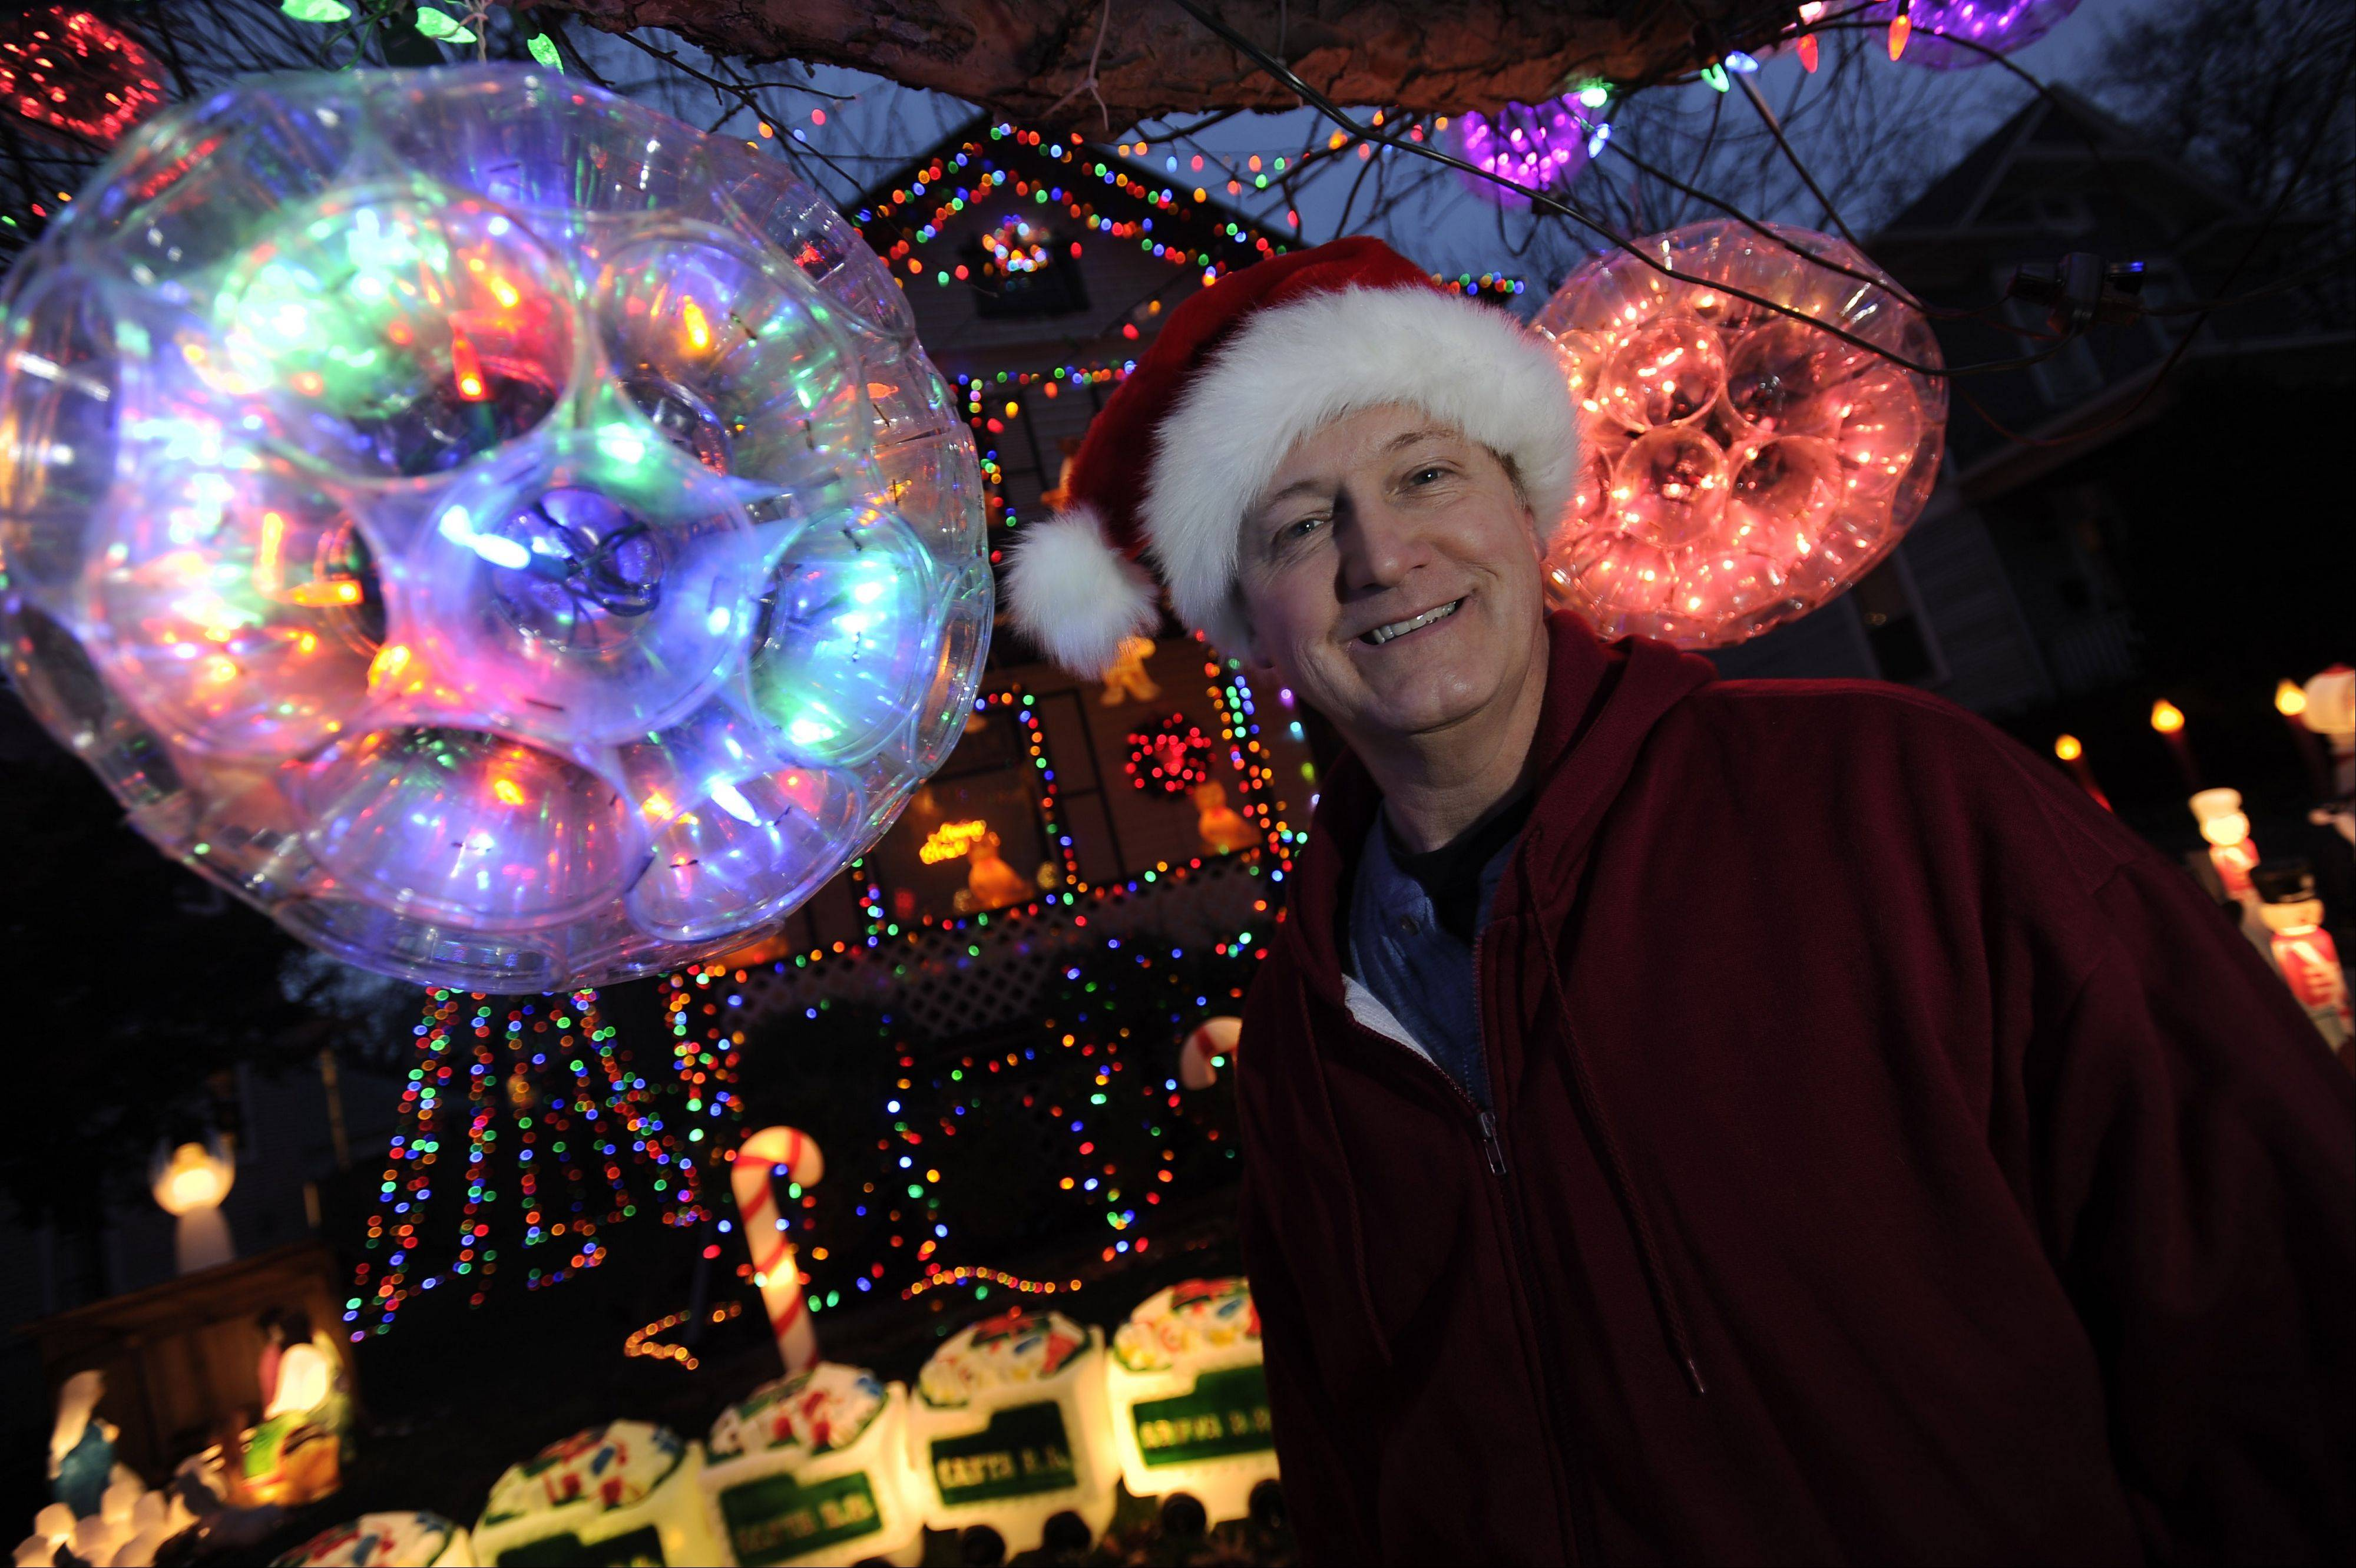 Elgin resident Michael Arnold won the Daily Herald's holiday lights contest in 2011.